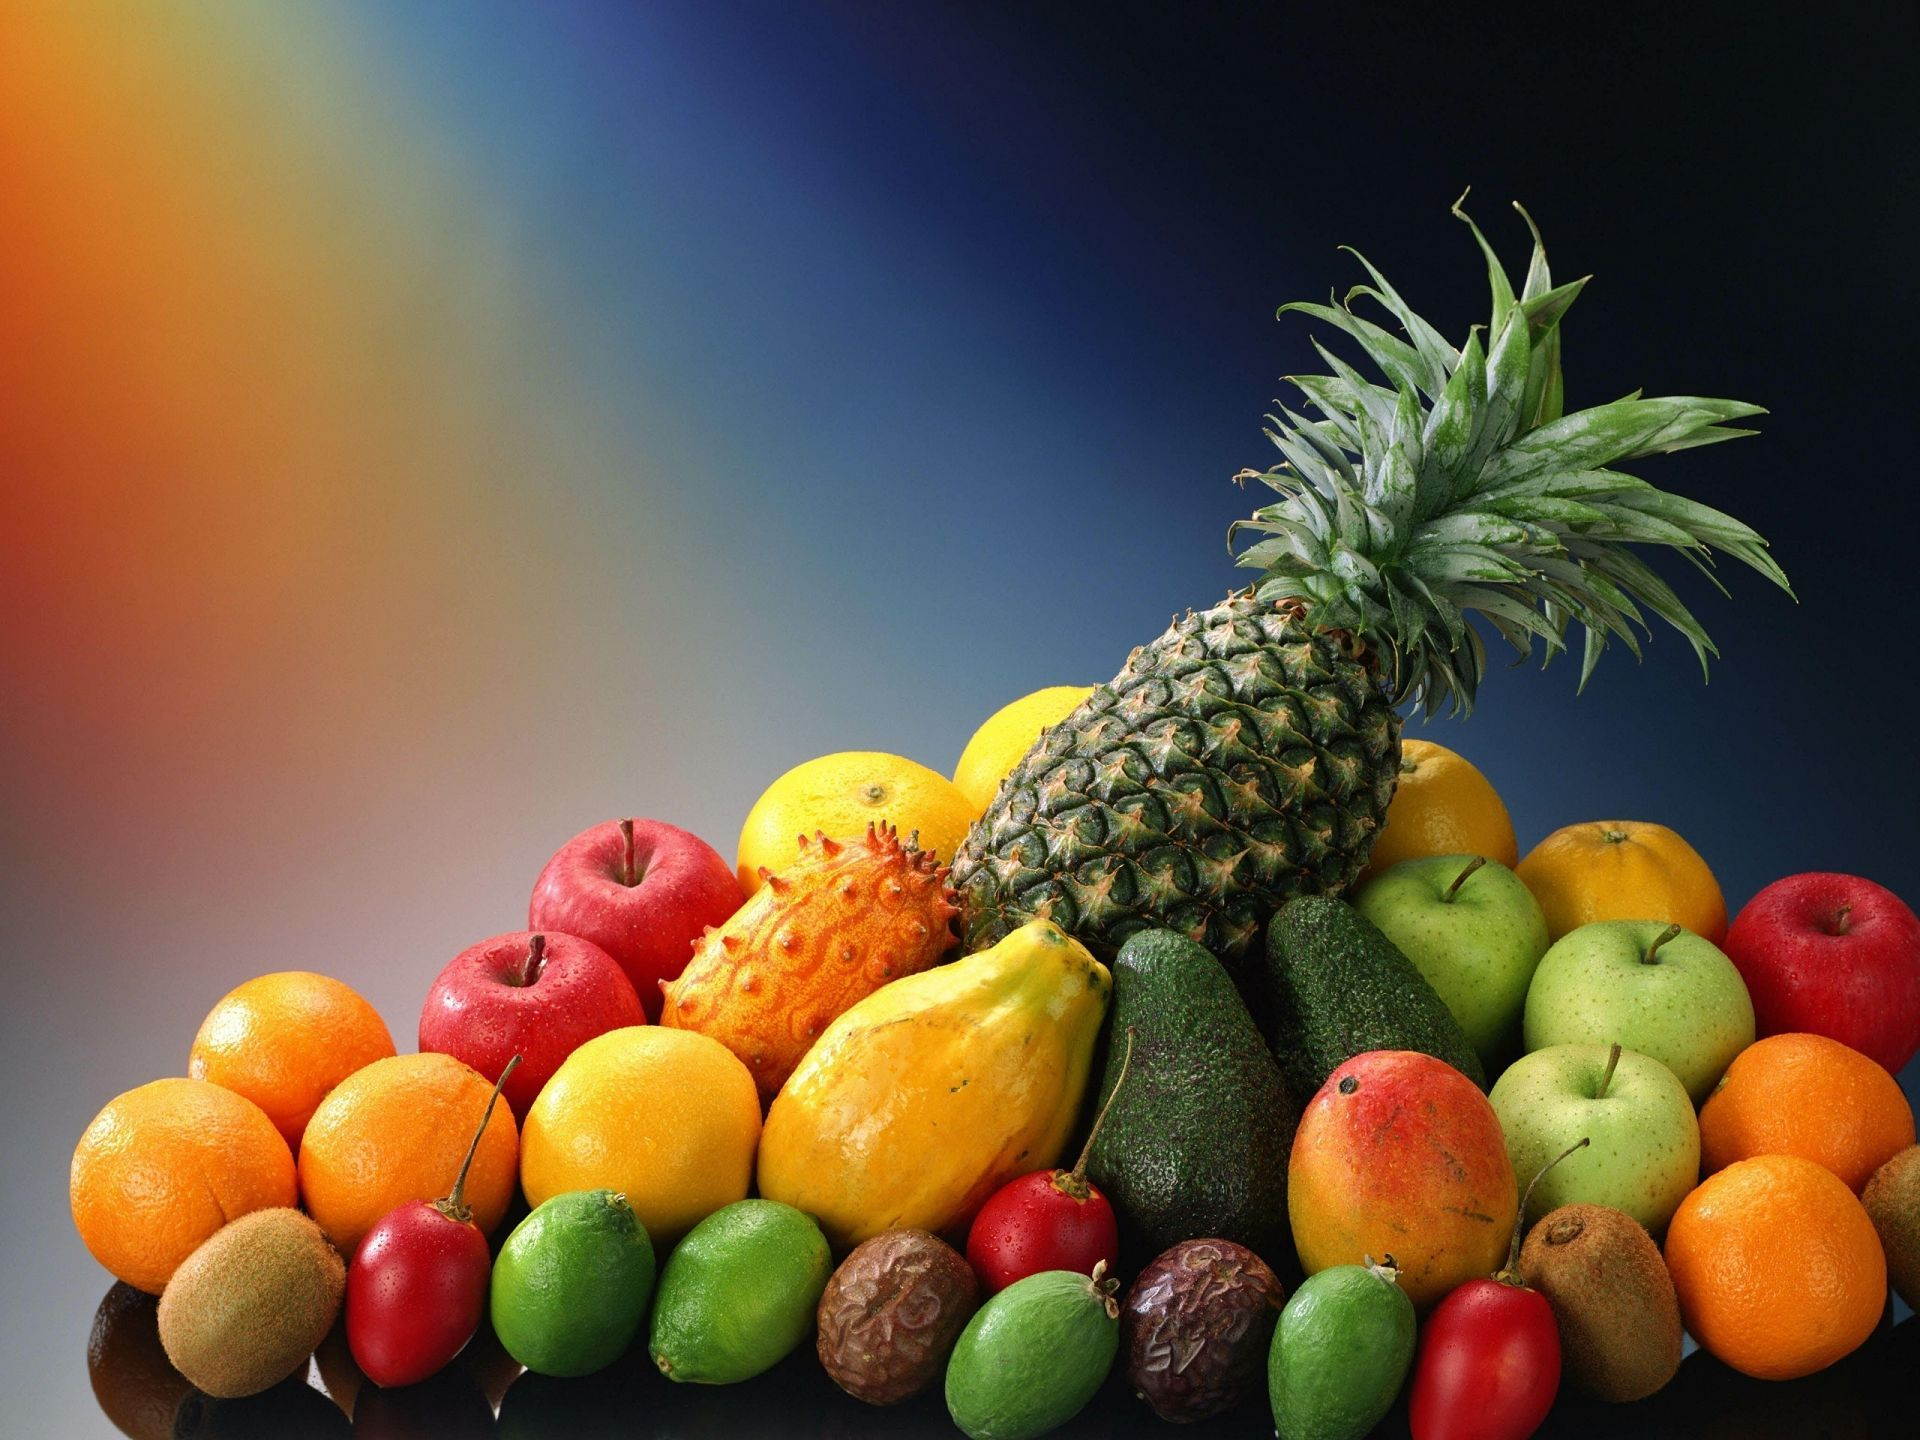 Fruits wallpapers for desktop HD Wallpaper 1920x1440